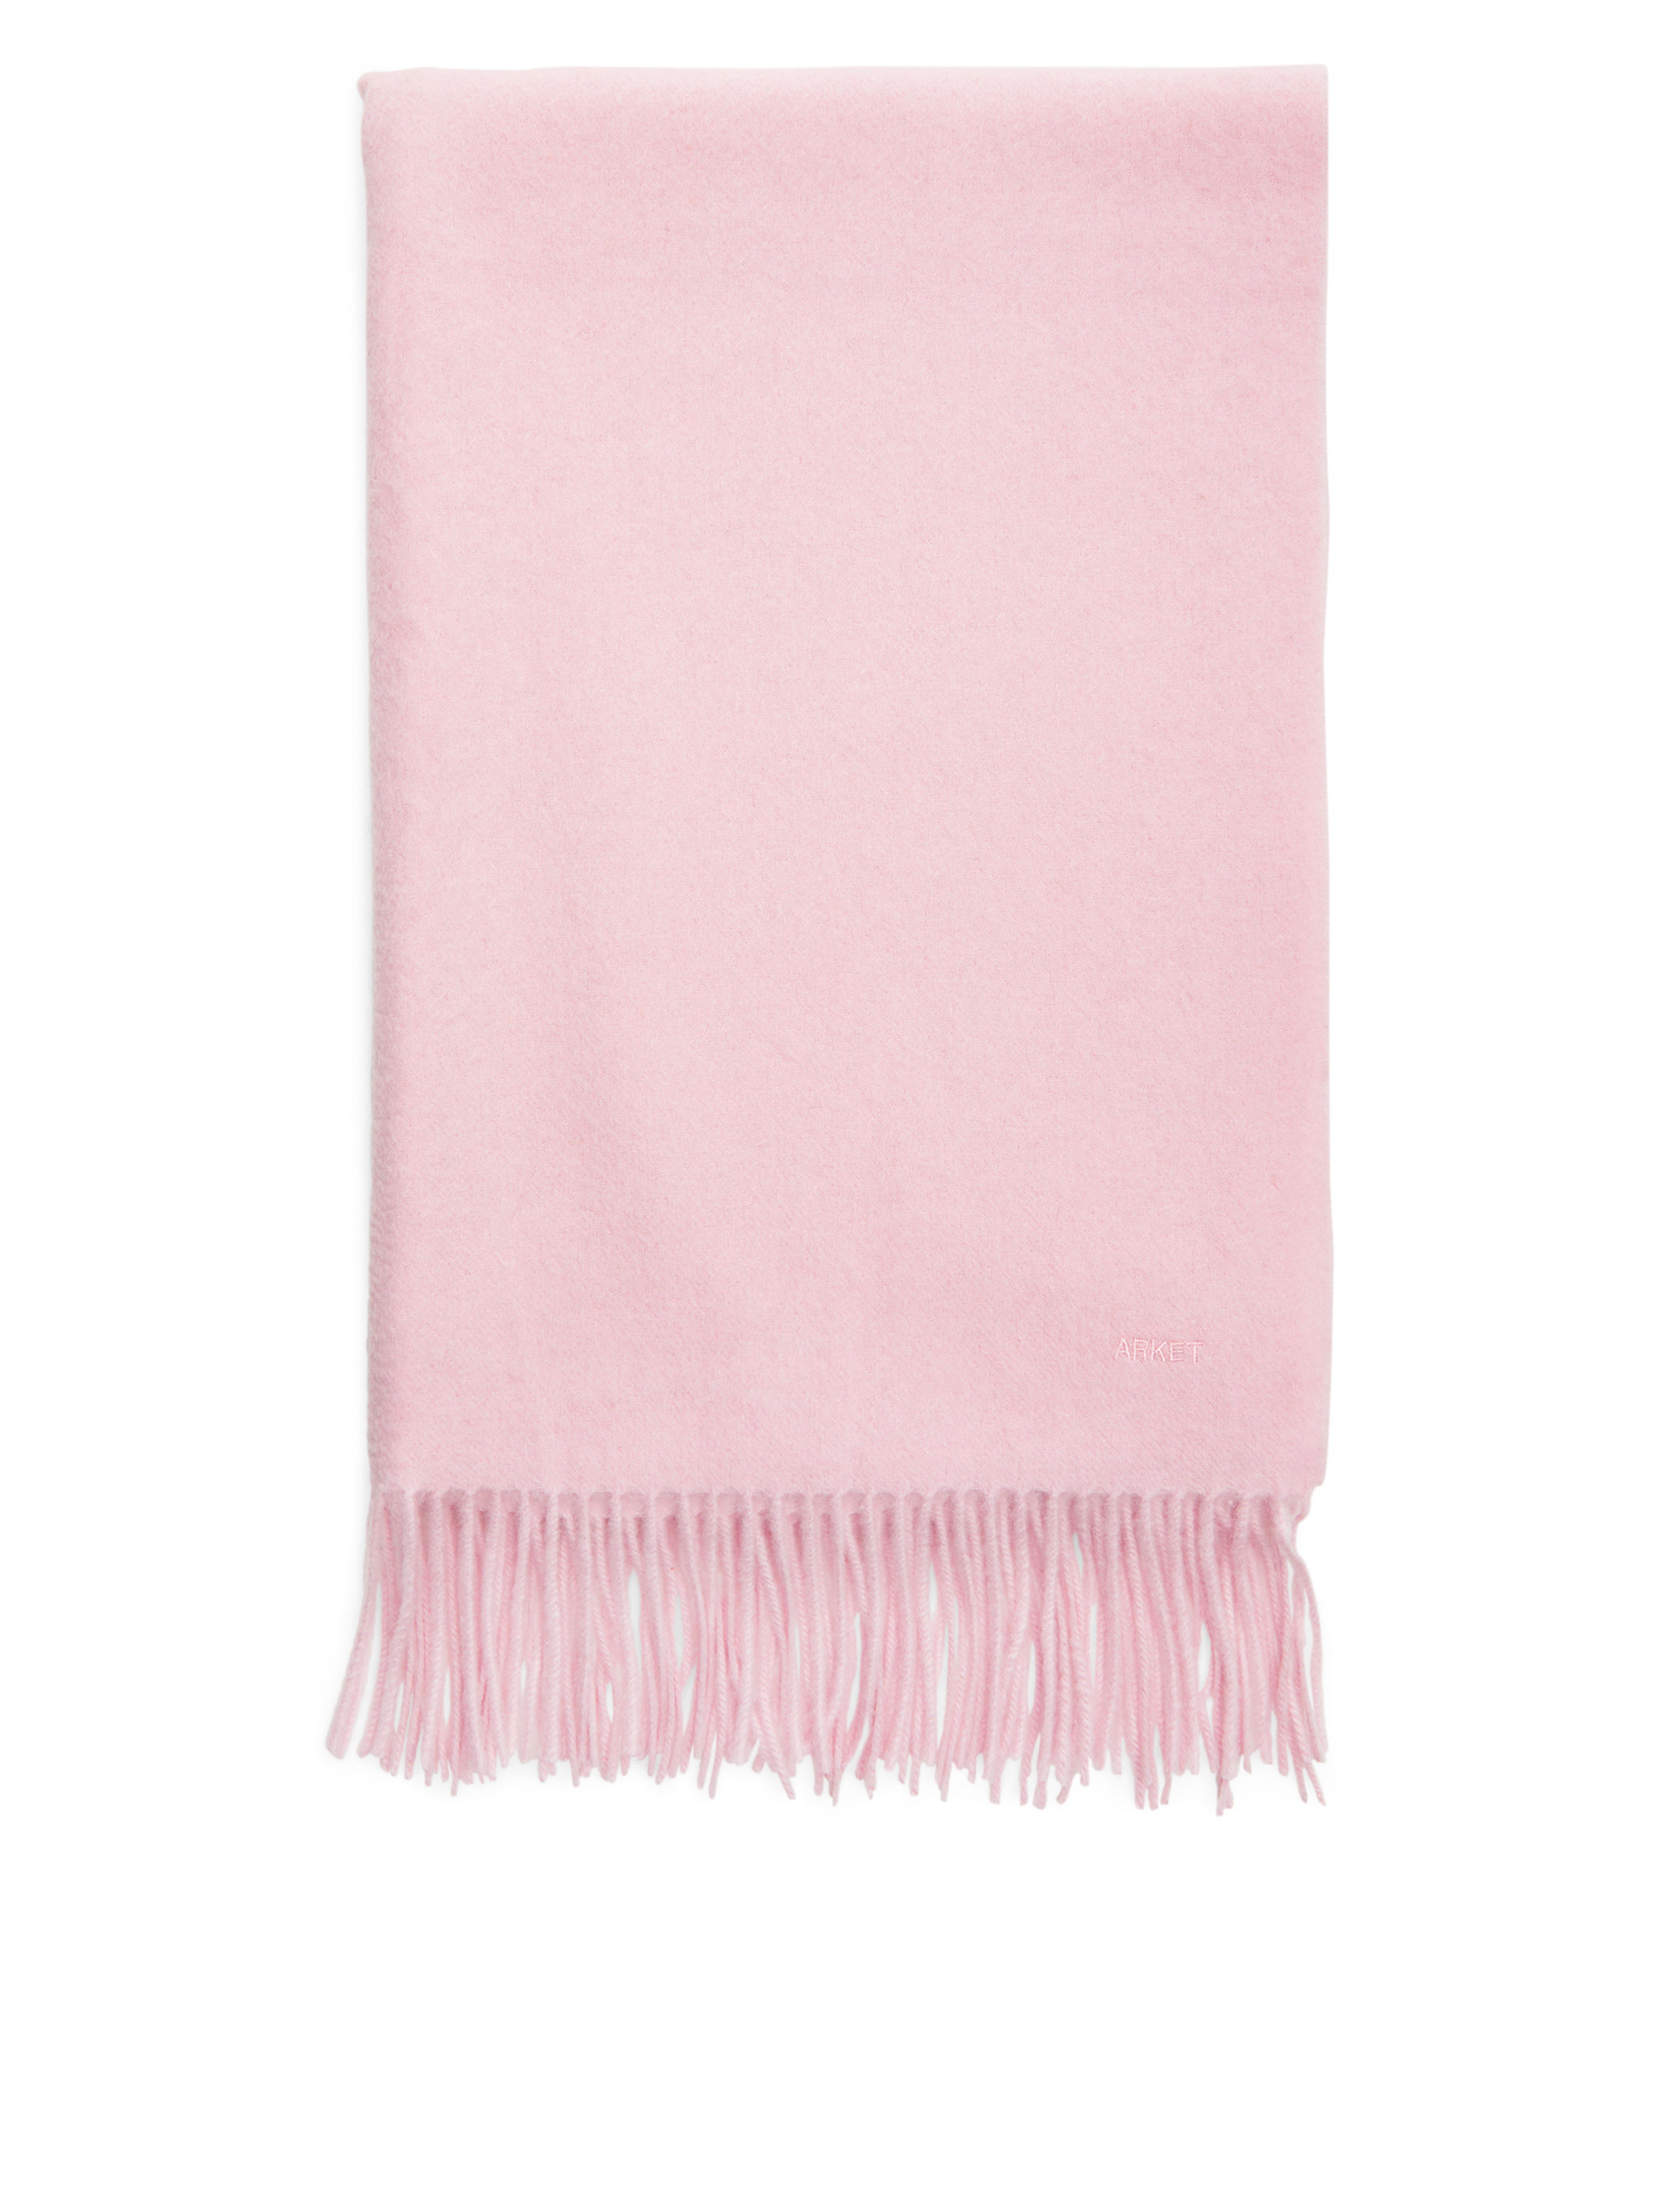 Fabric Swatch image of Arket woven cashmere scarf in pink